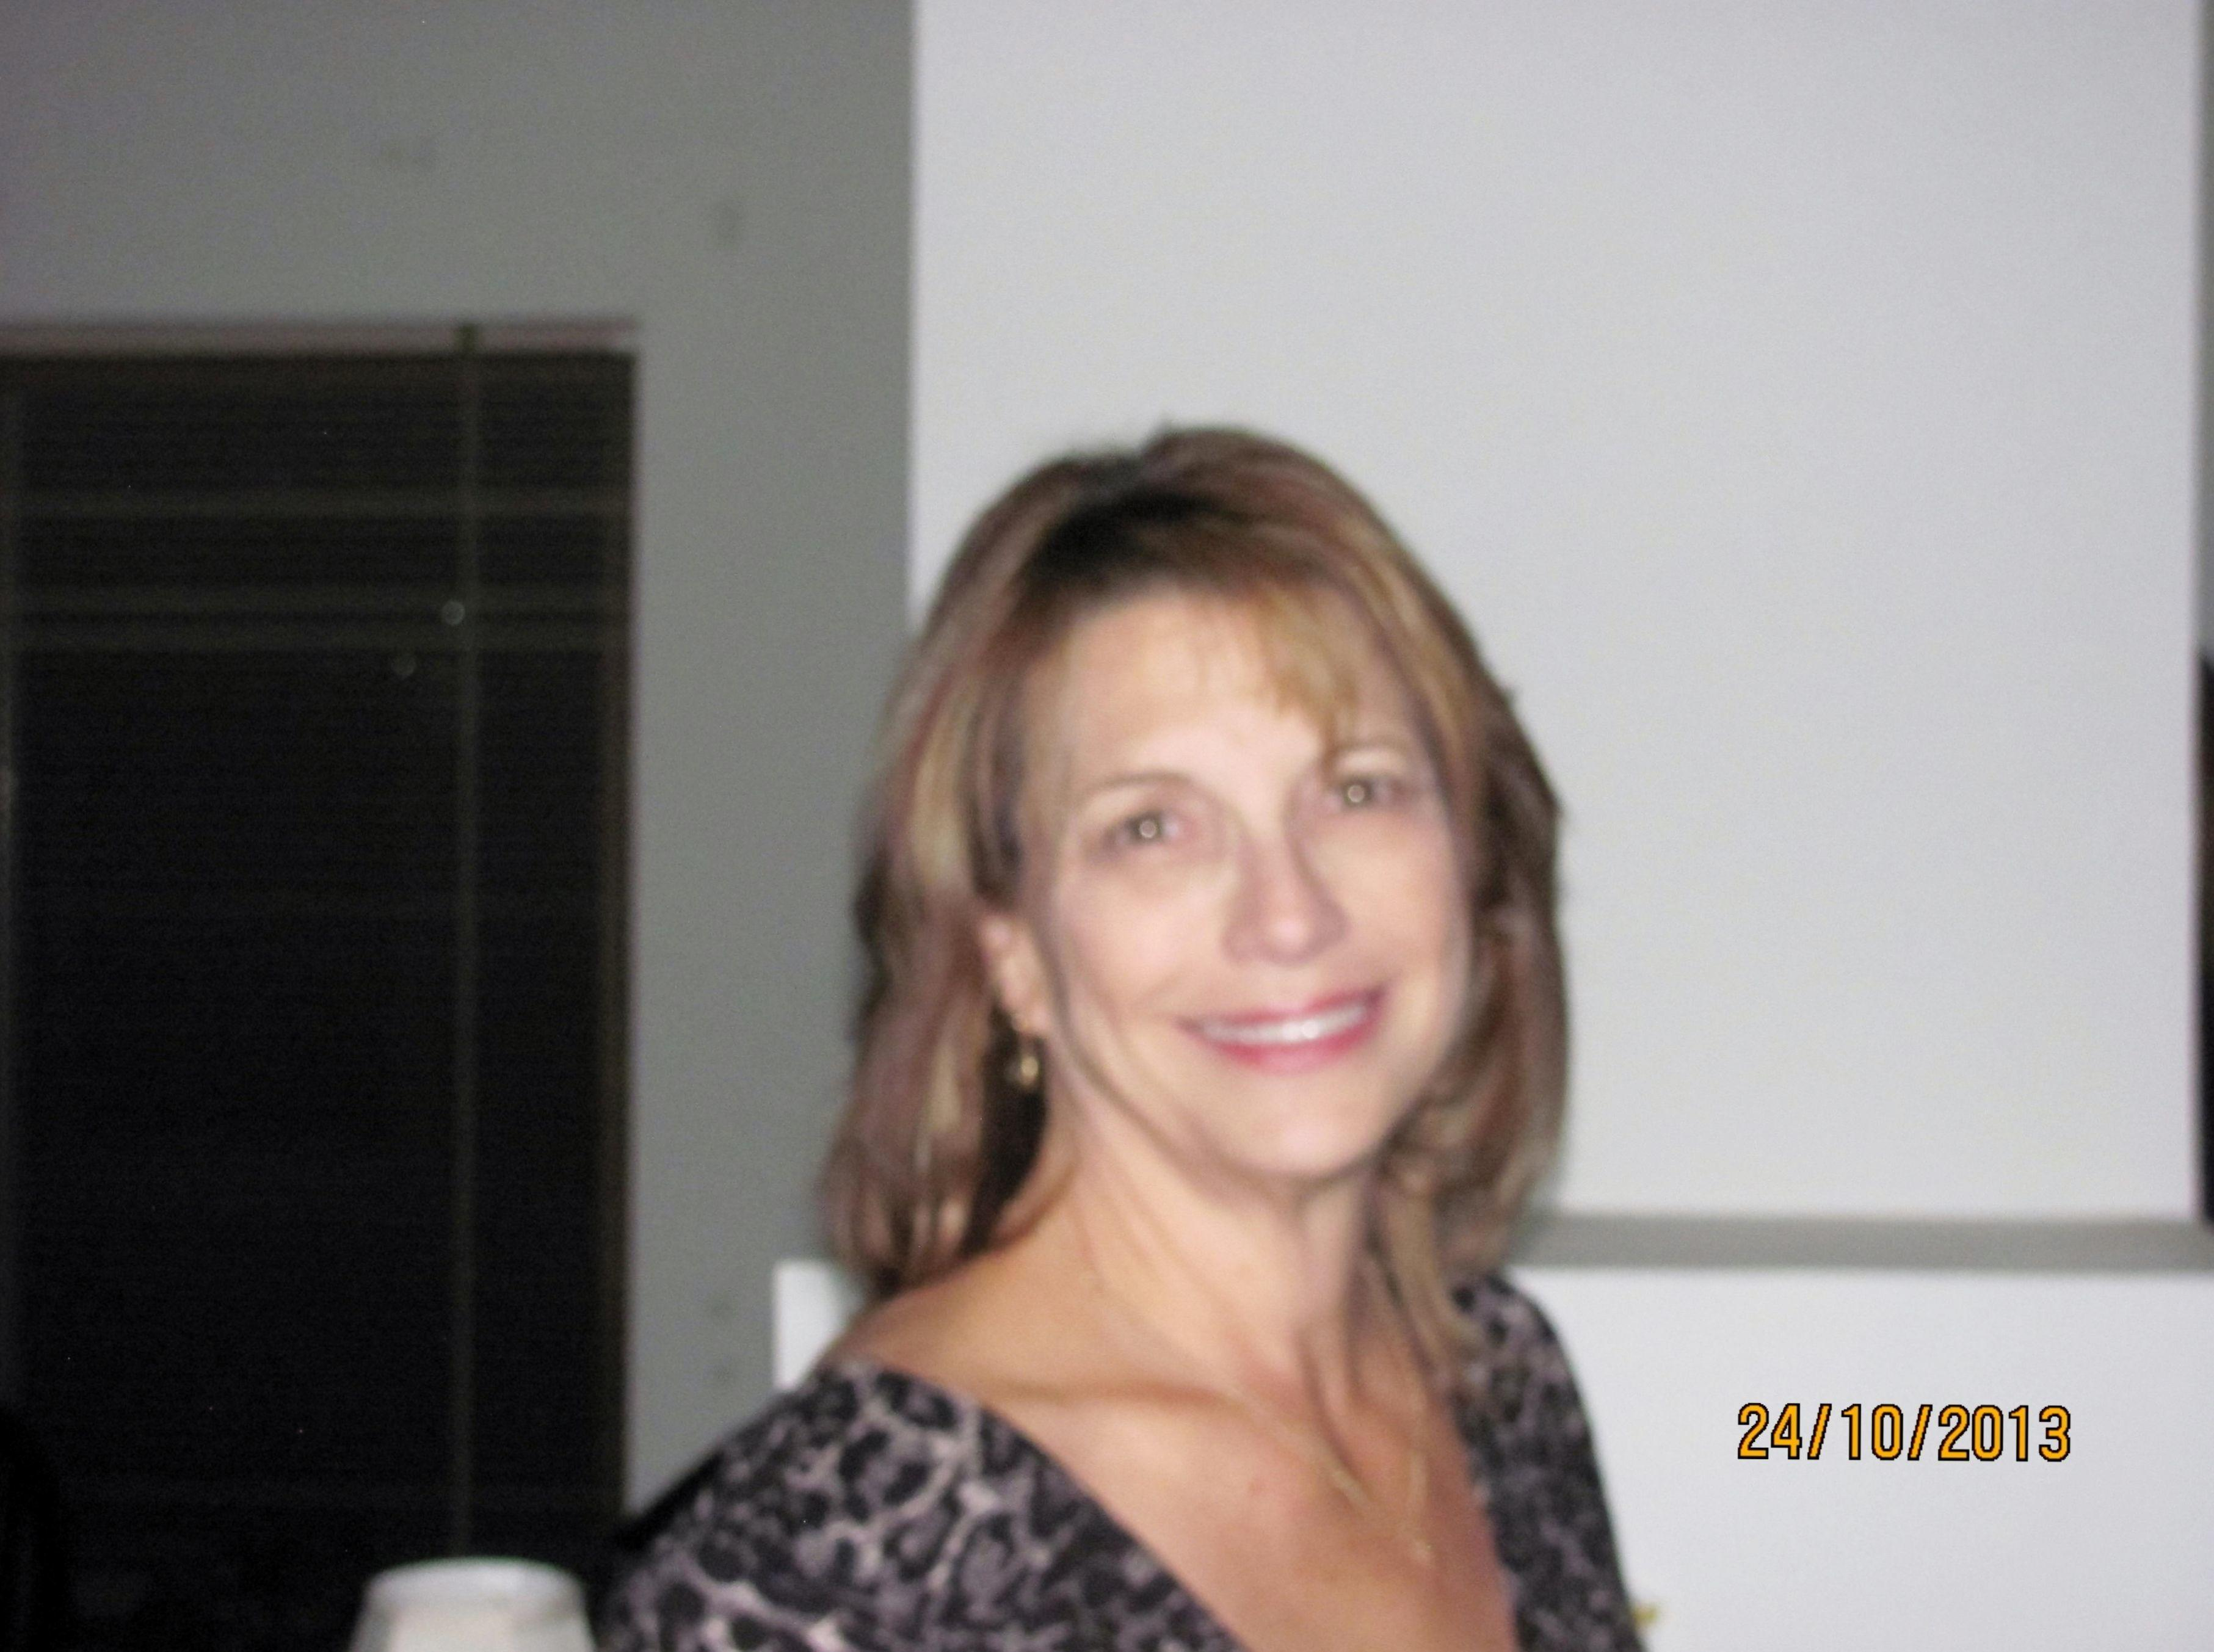 meet parker county singles Topix texas parker county weatherford ready to meet new people register free to check out more than 900 photos of singles in weatherford.